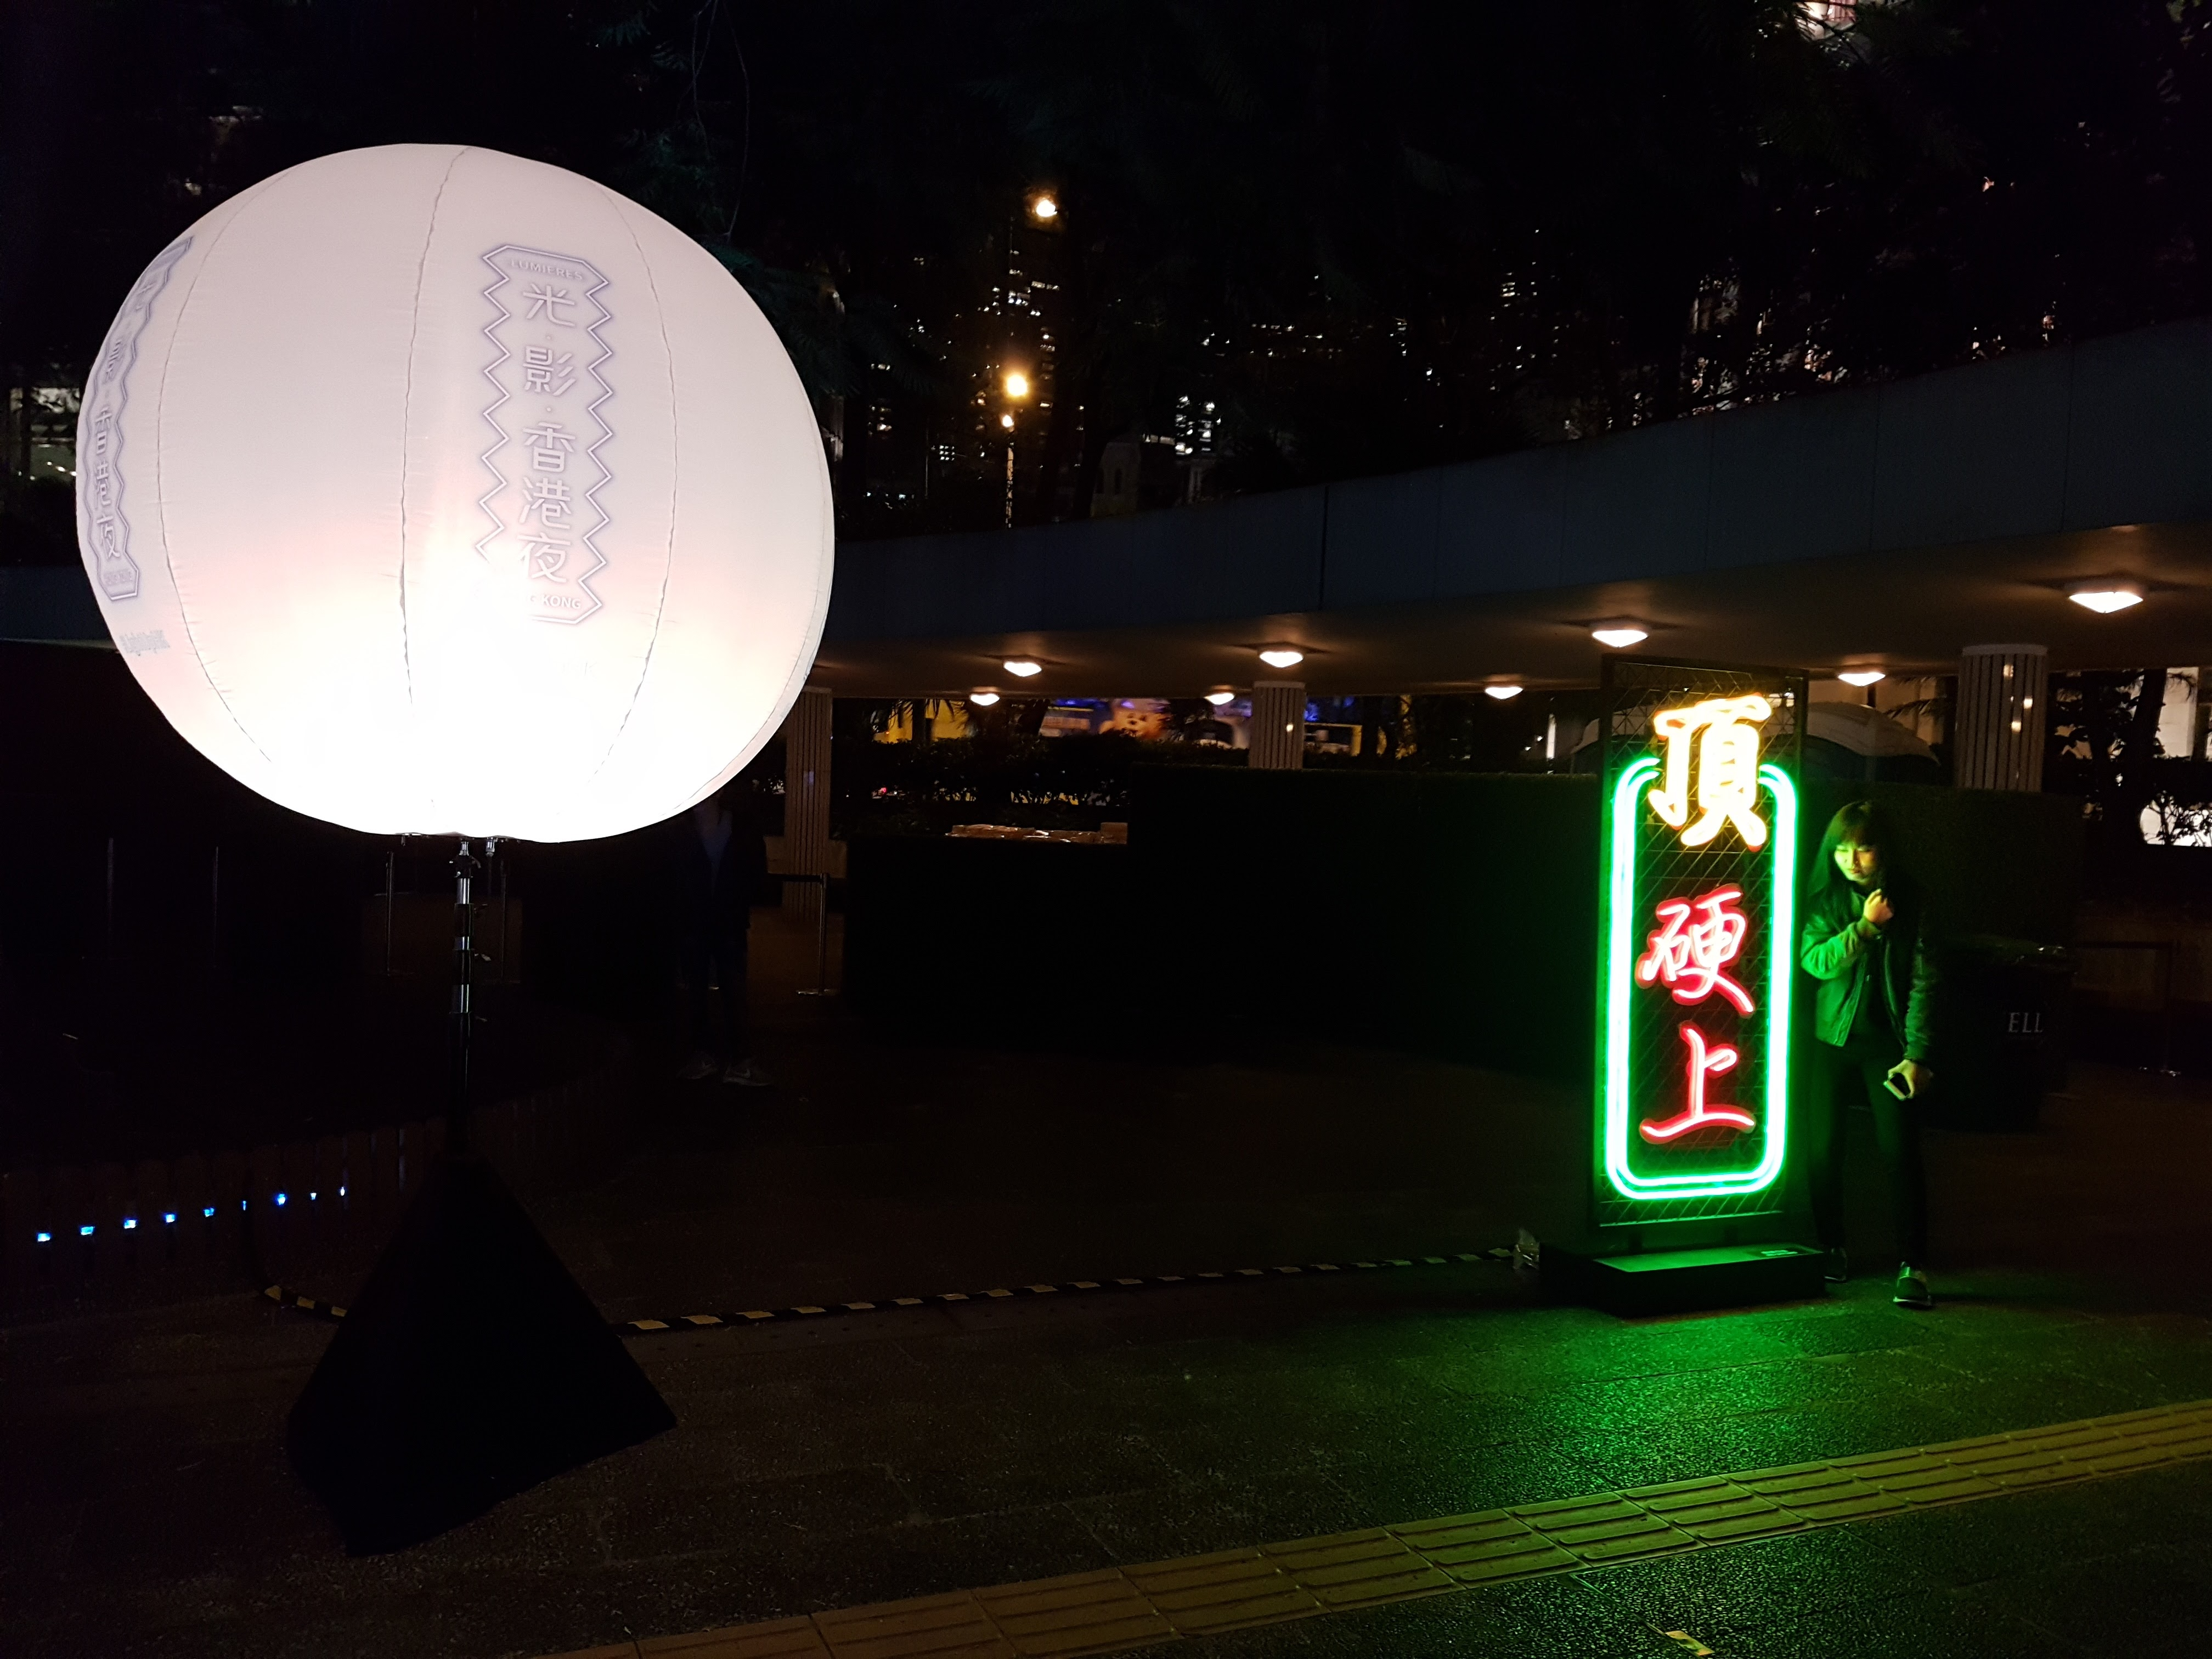 A light installation in Lumieres HK